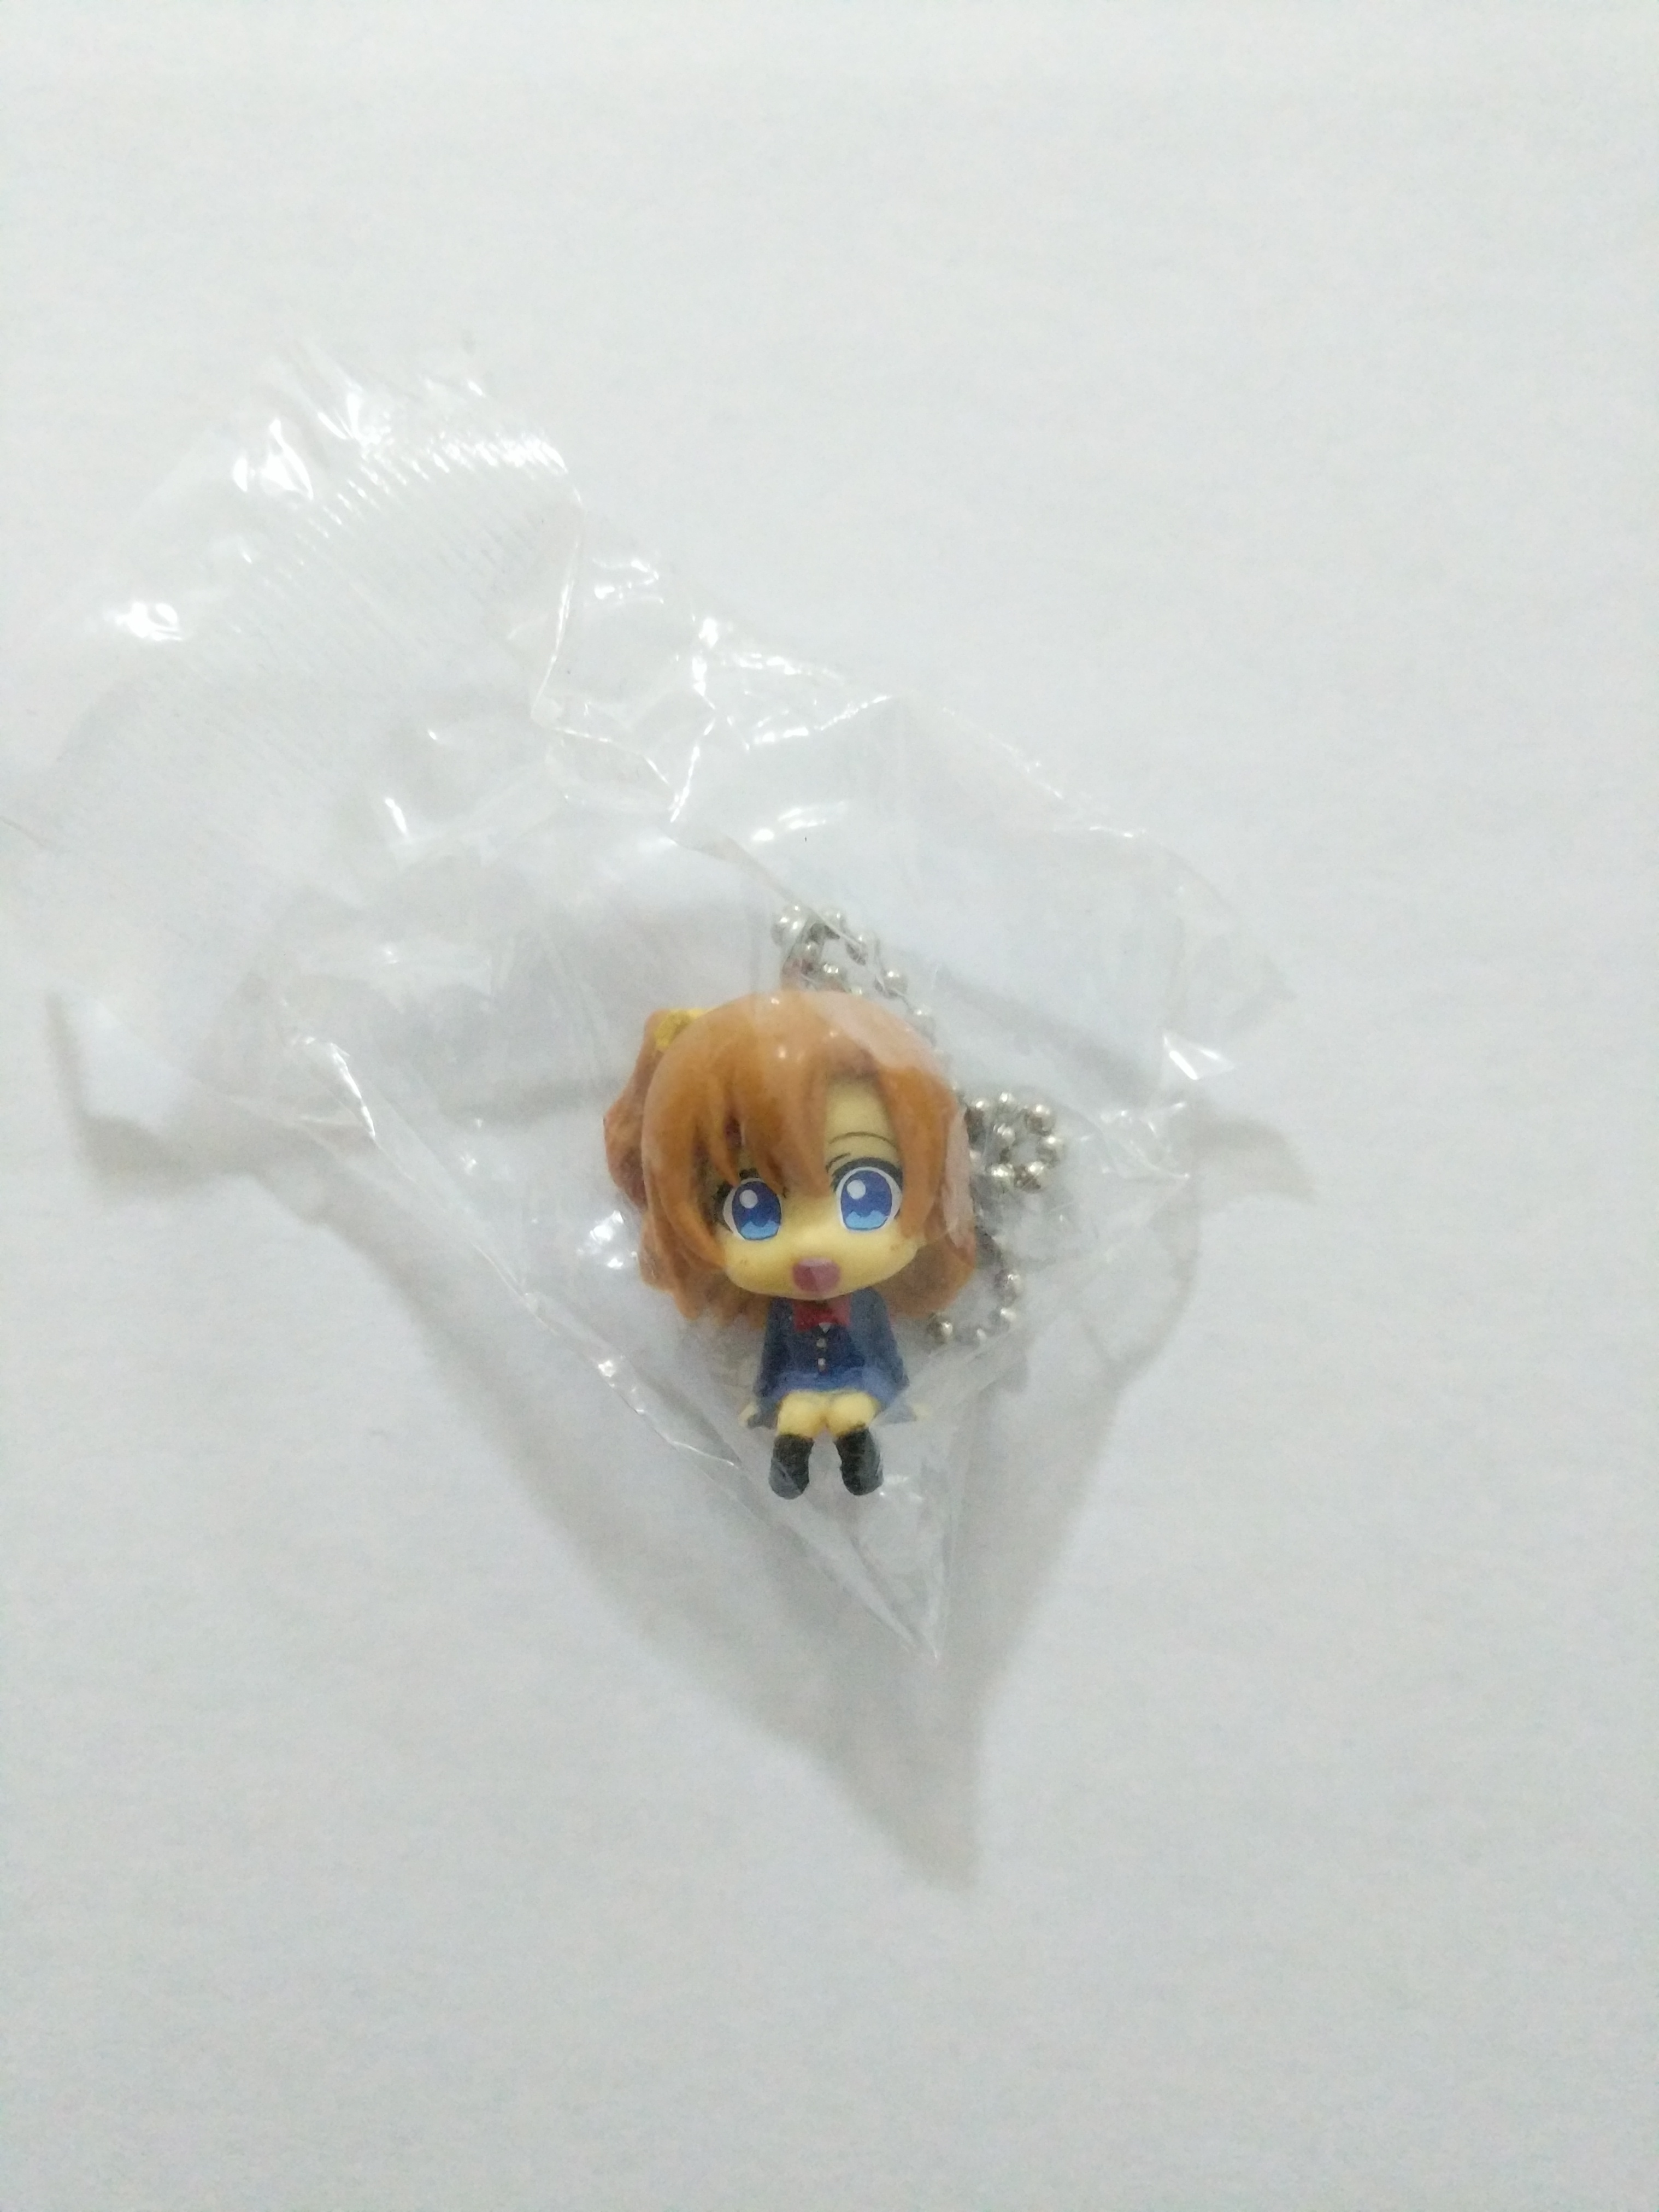 Honoka winter uniform mini figure strap